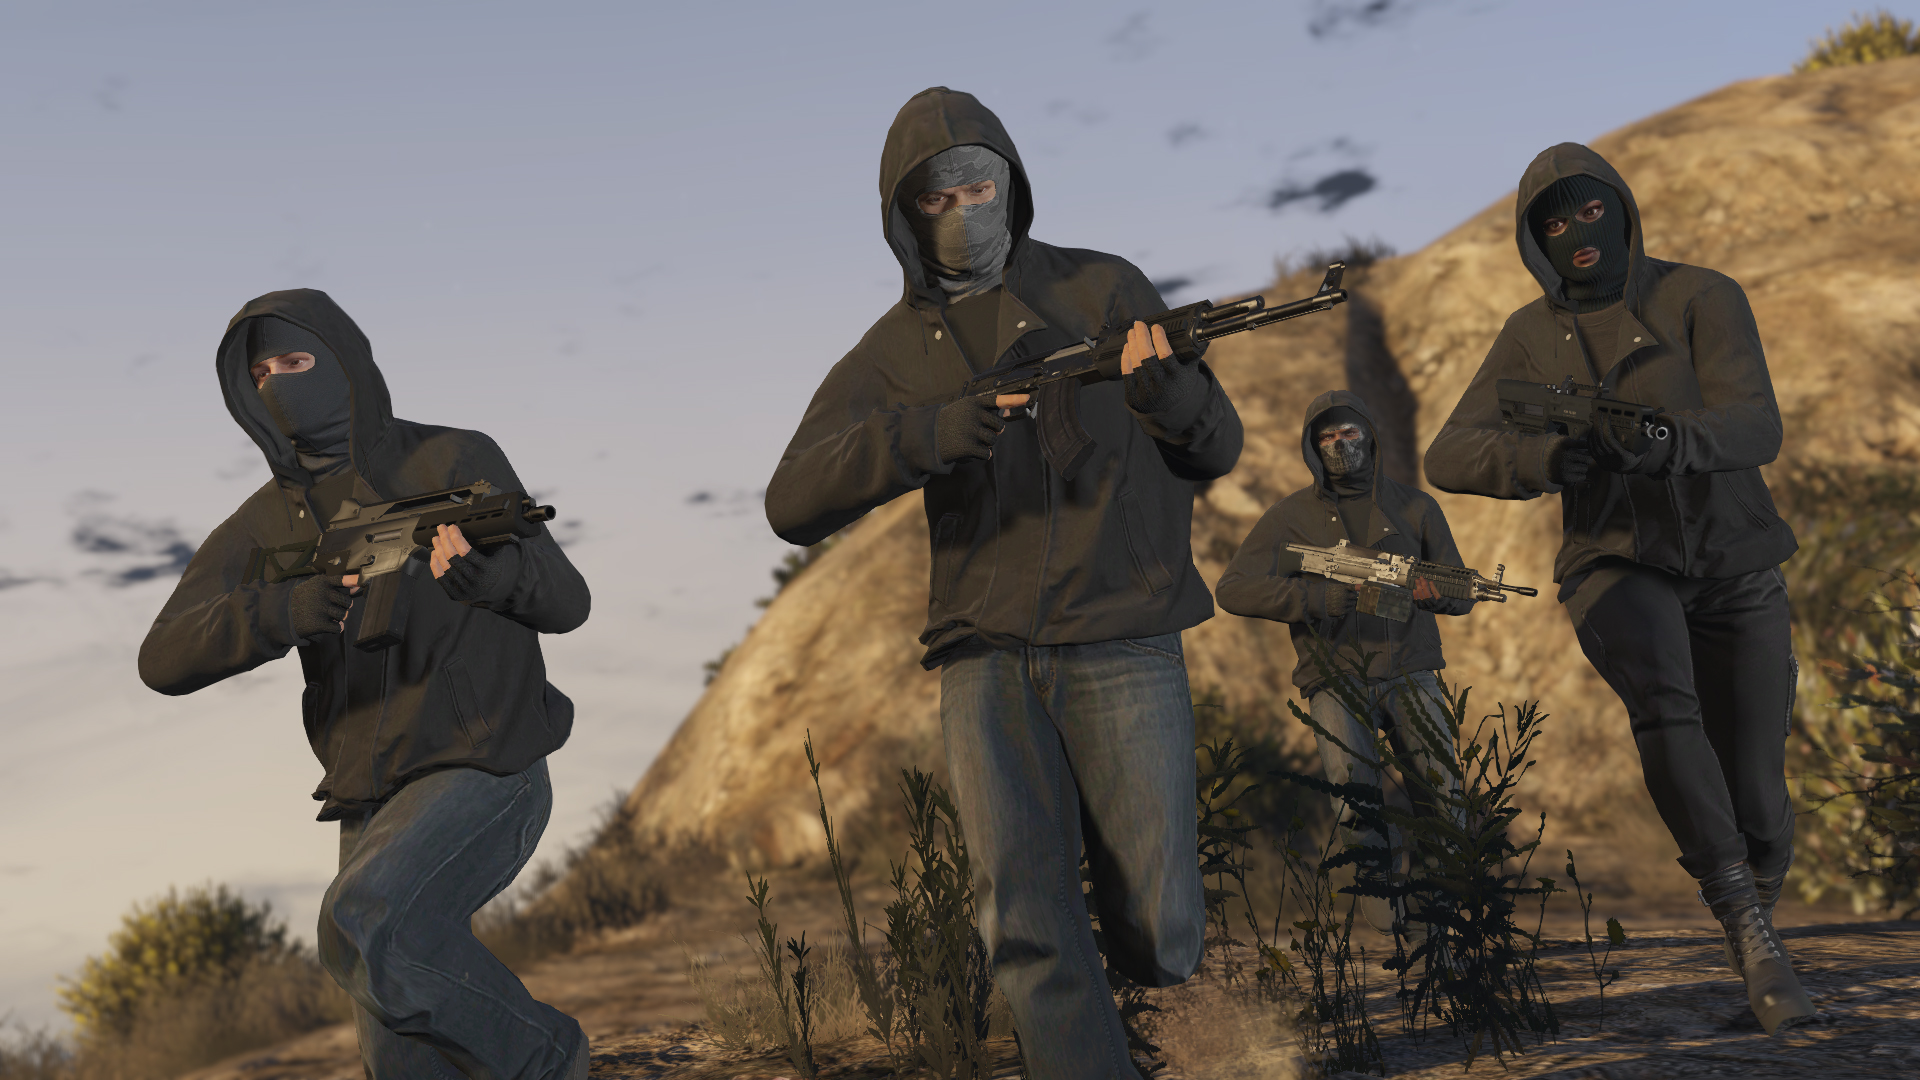 GTA V Online Heists due March 10, PC version delayed to April 14